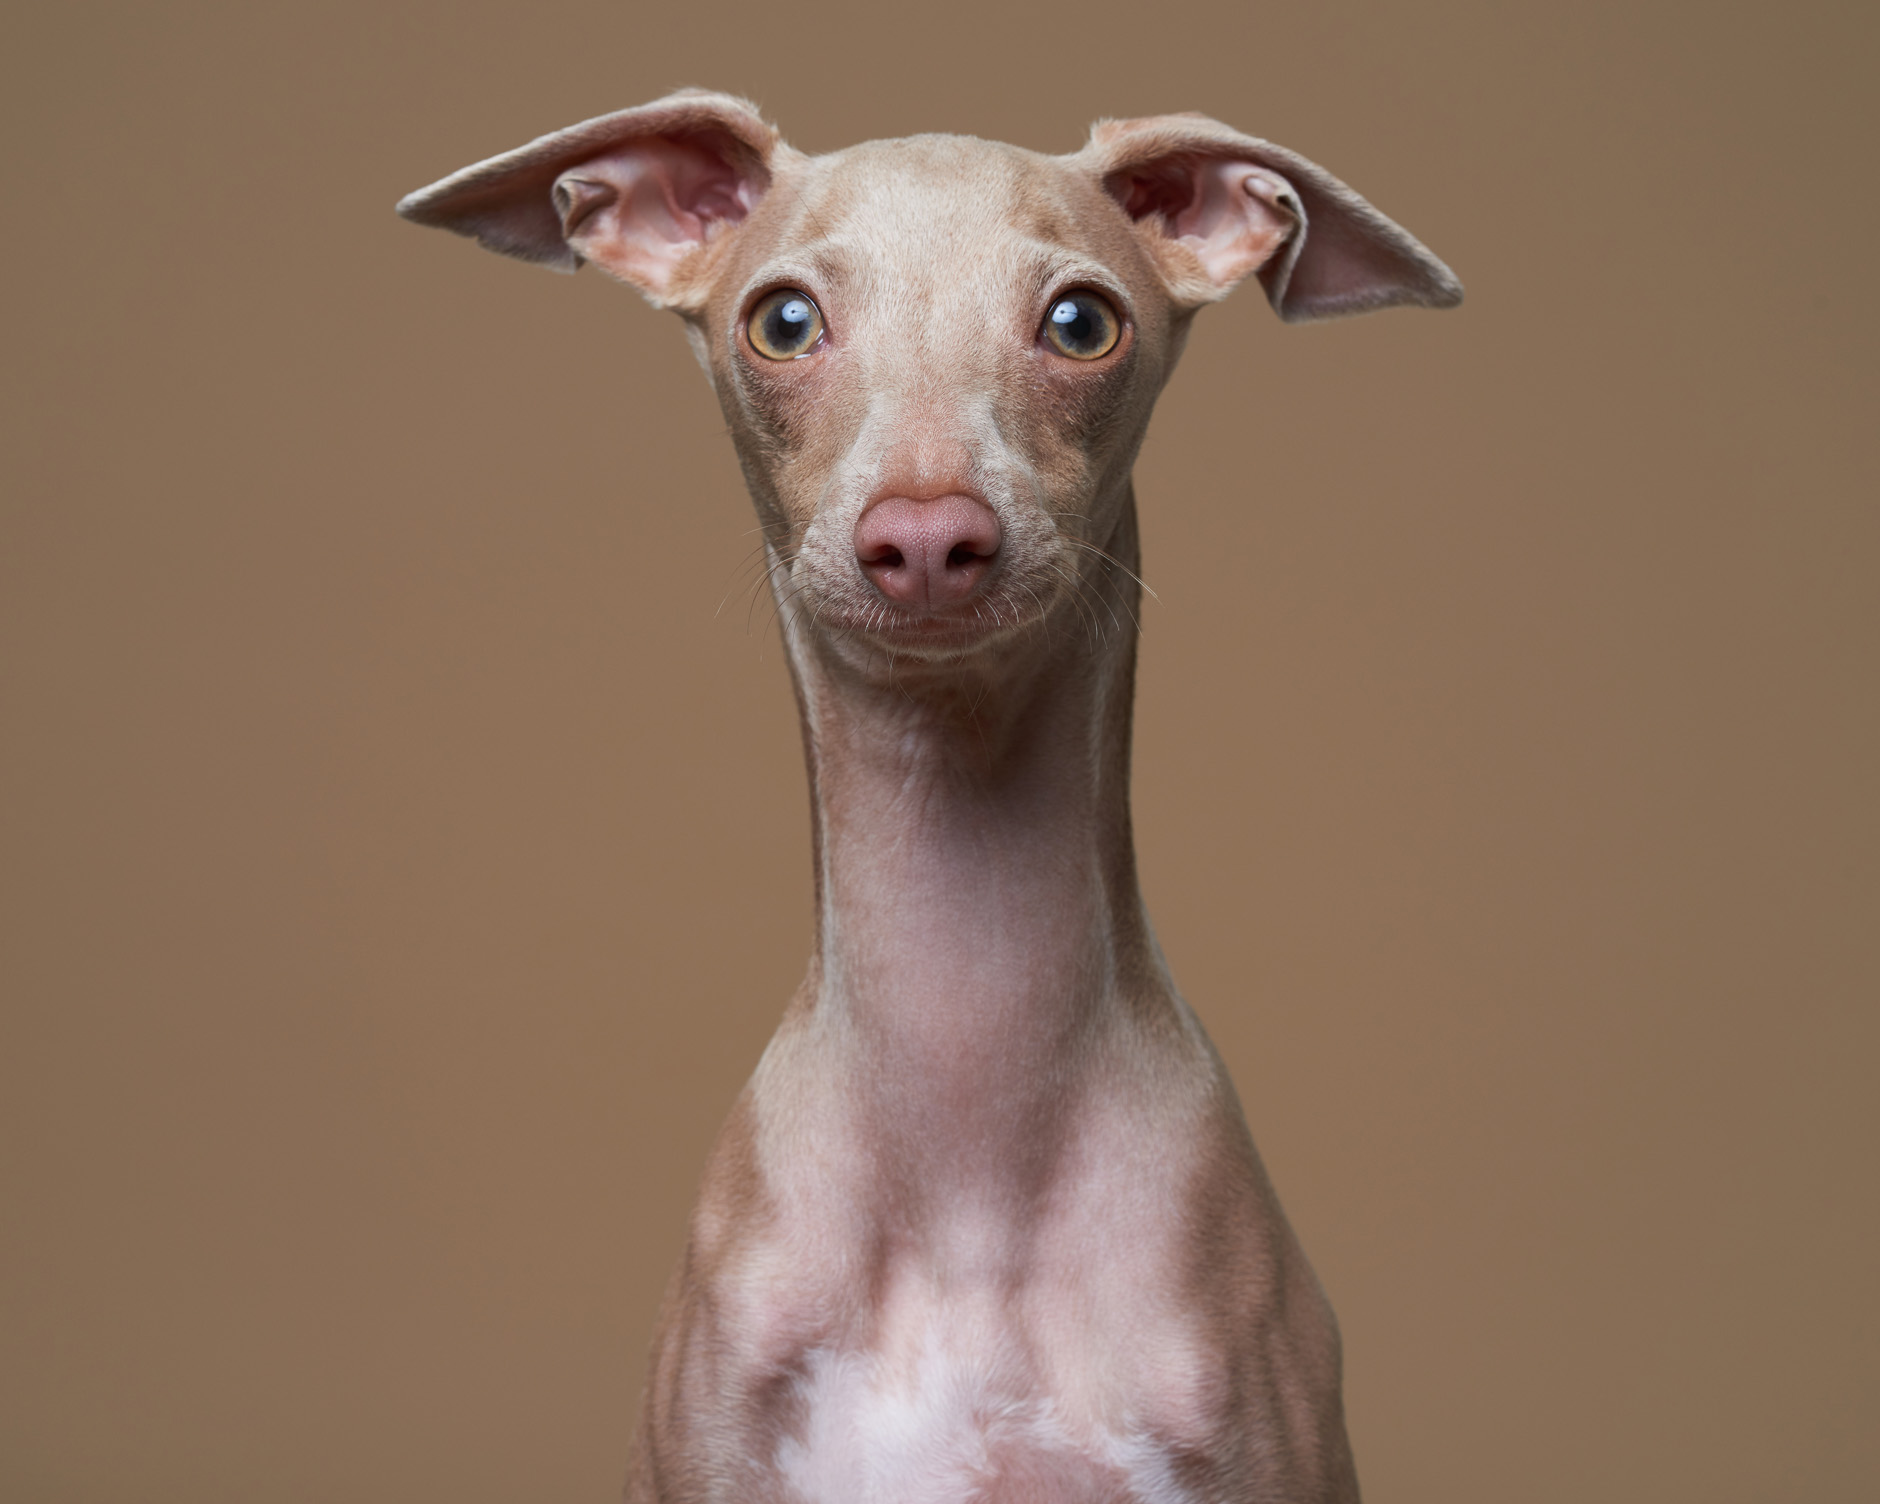 dog pet commercial photographer san francisco bay area Italian greyhound